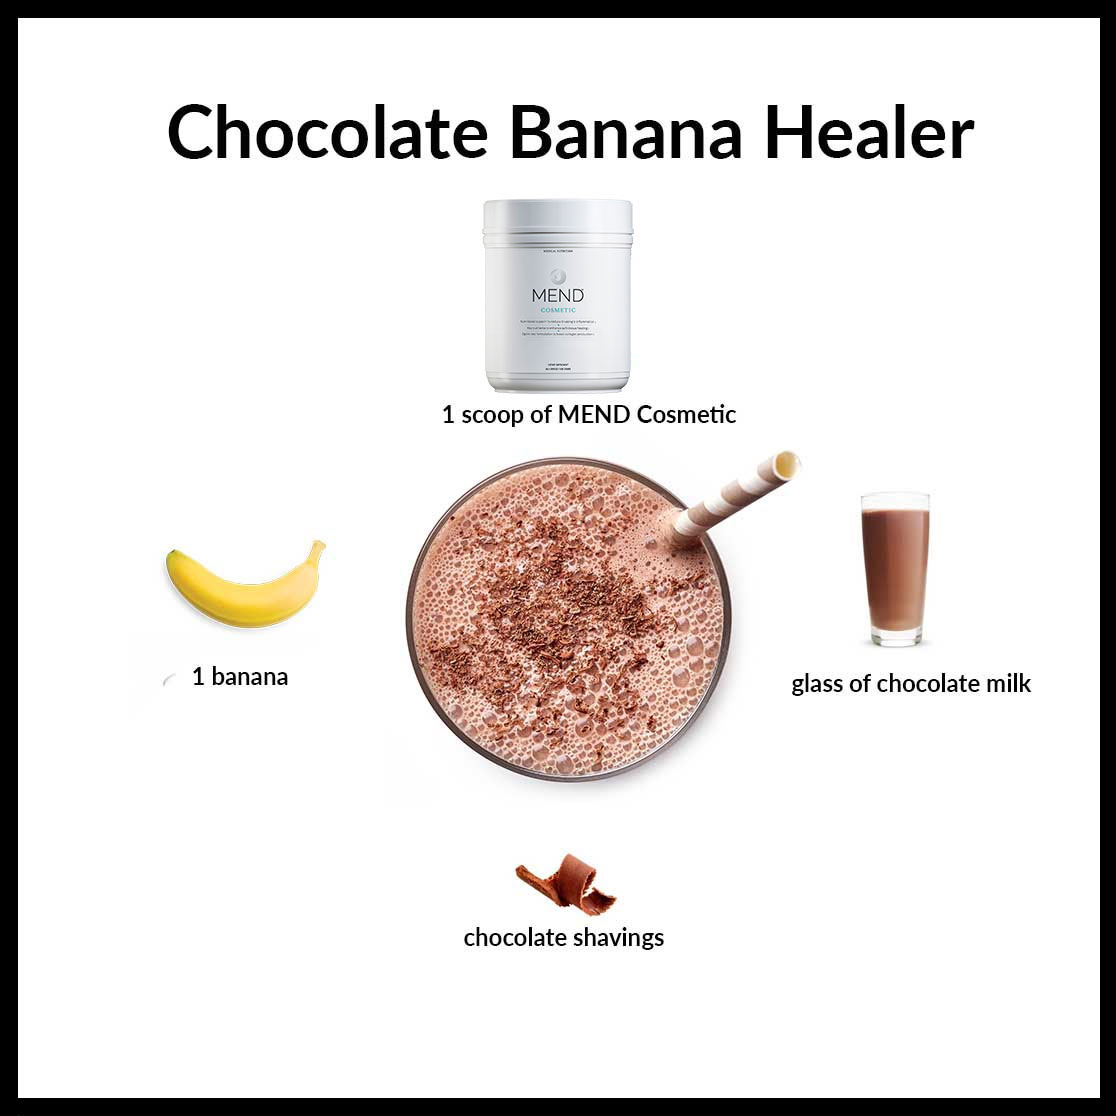 Chocolate Banana Healer